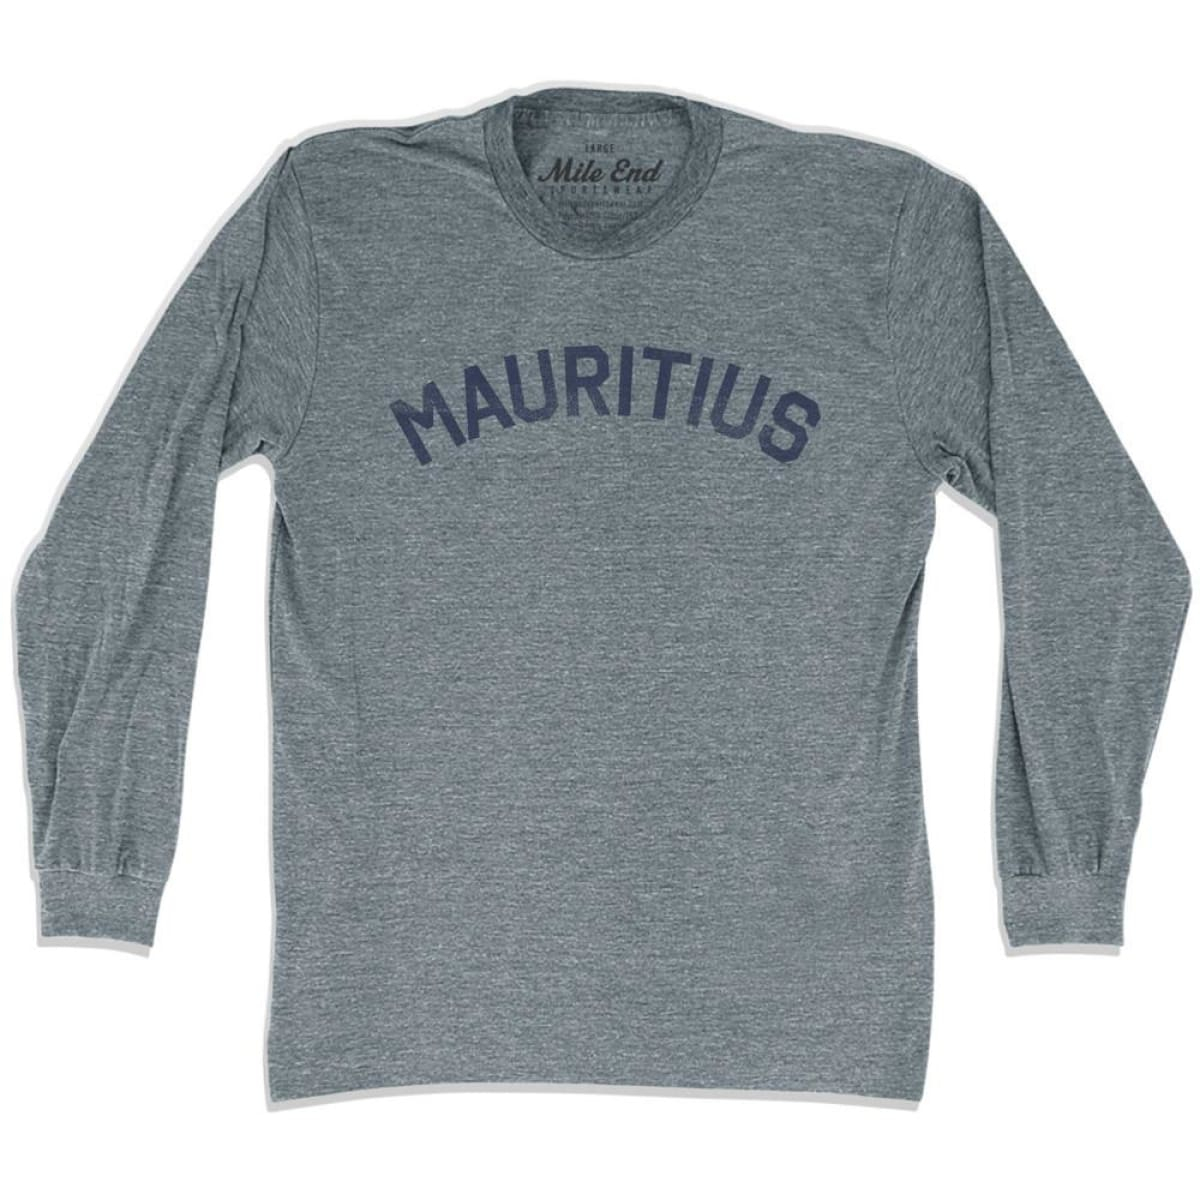 Mauritius City Vintage Long Sleeve T-shirt - Athletic Grey / Adult X-Small - Mile End City